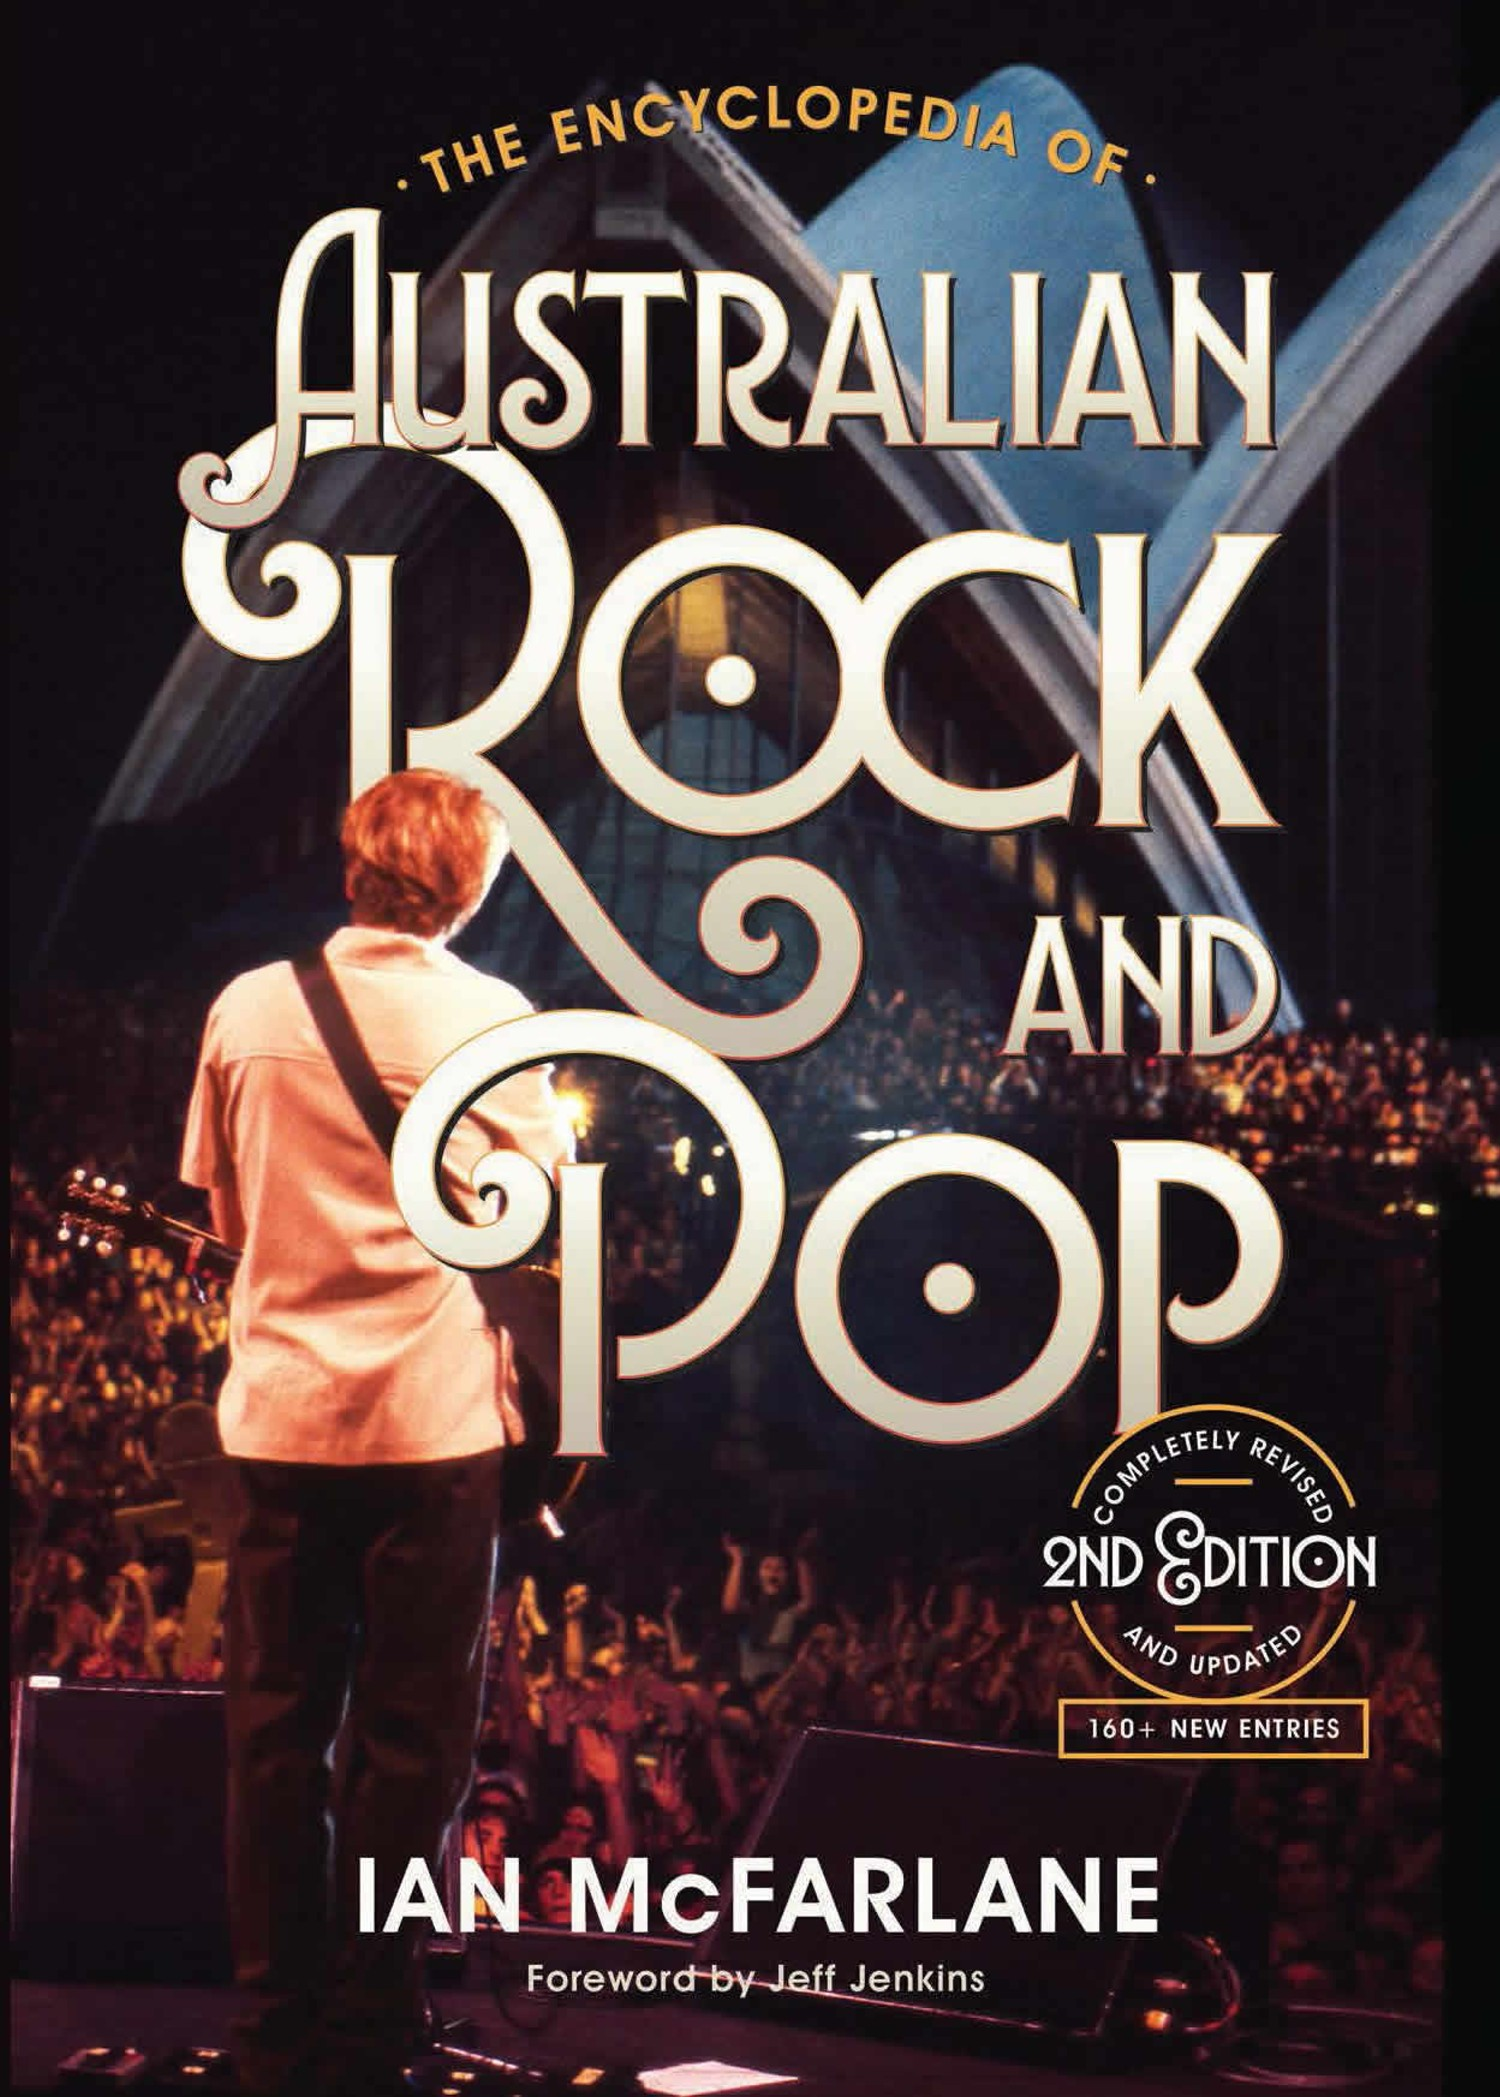 The Encyclopedia of Australian Rock and Popby Ian McFarlane